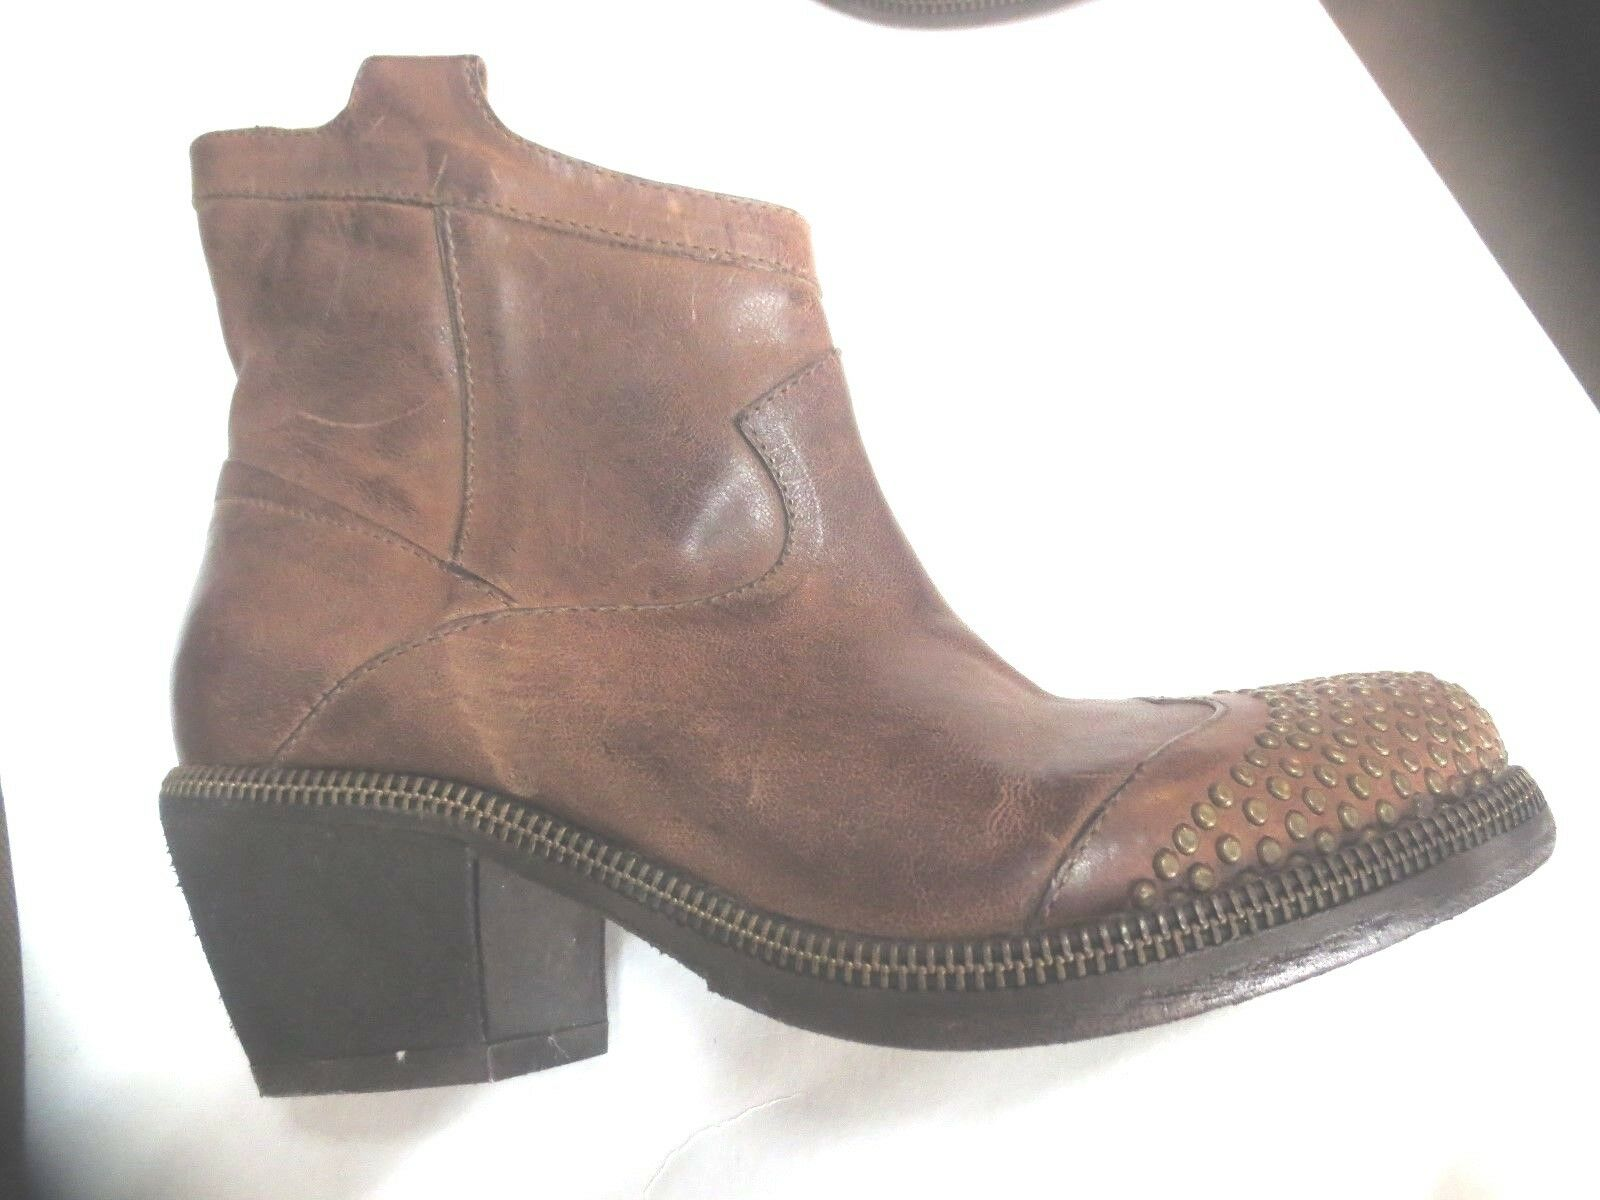 Boots santiag FRU.IT cuir washed  talon 5cm NEUVE Valeur 290E pointure 35.5